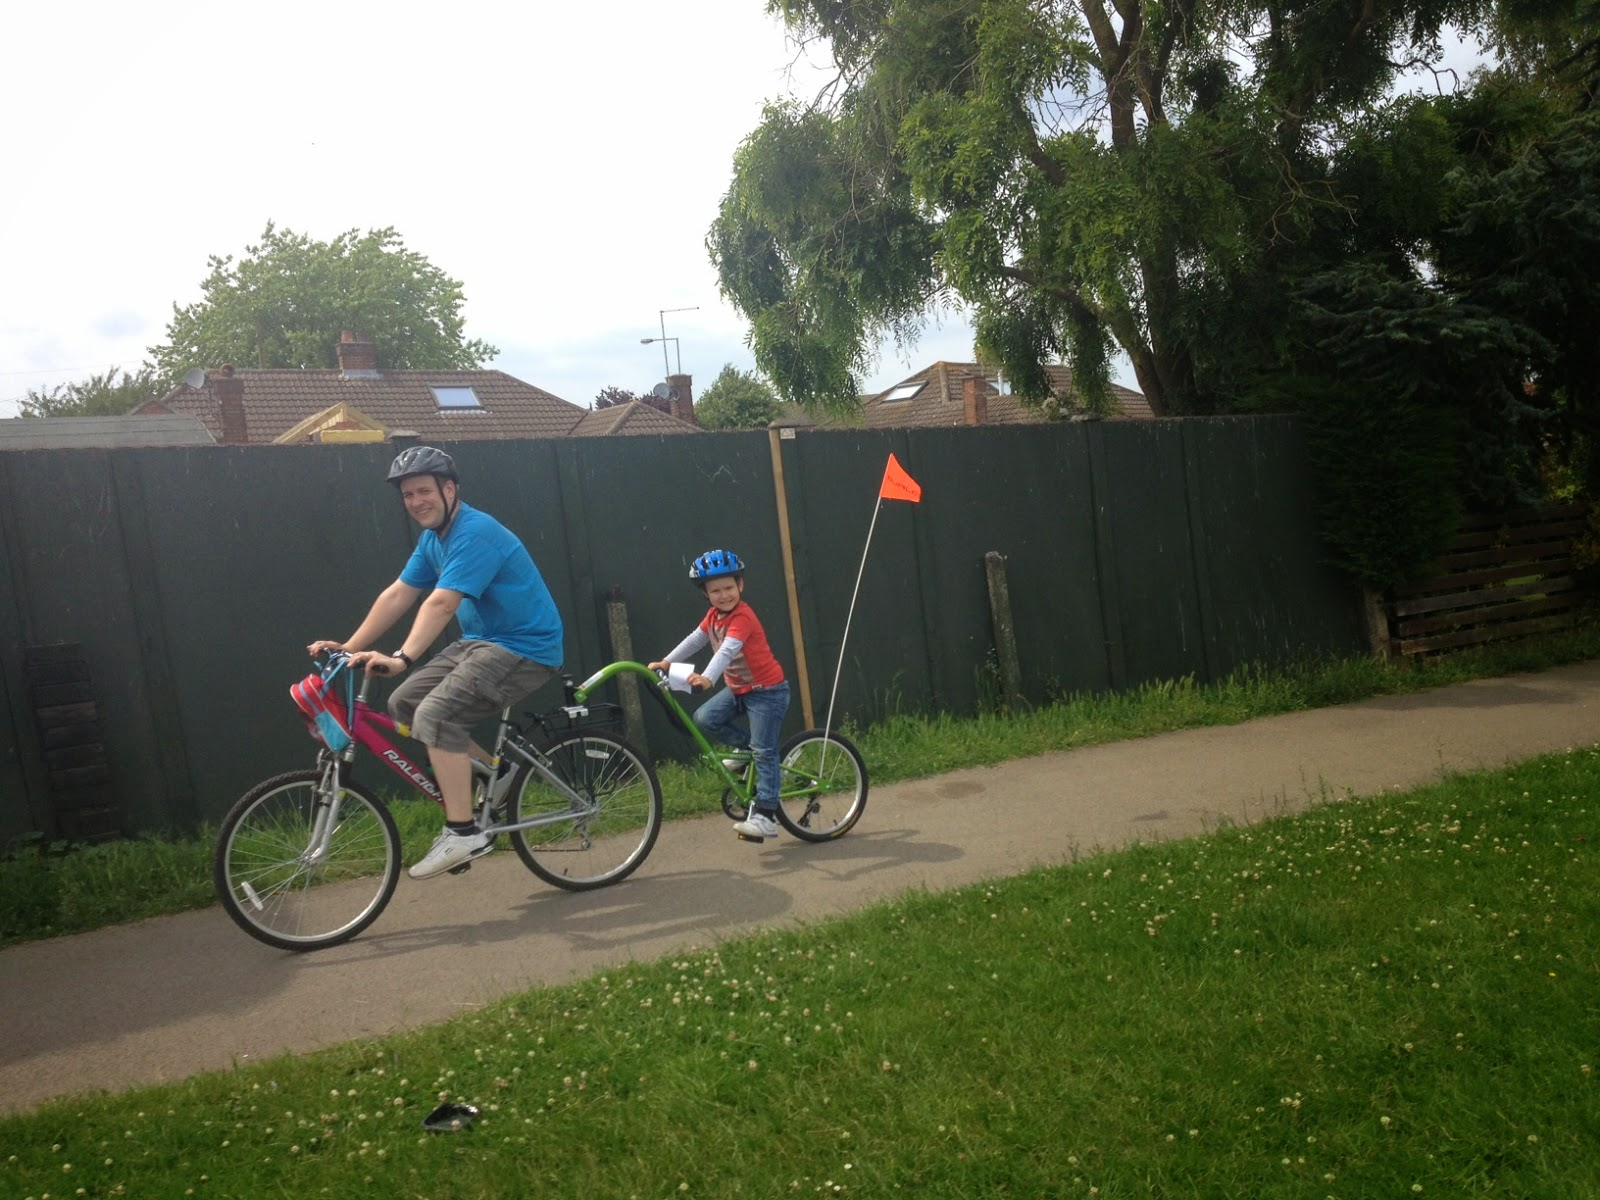 Big Boy and Daddy on the bike